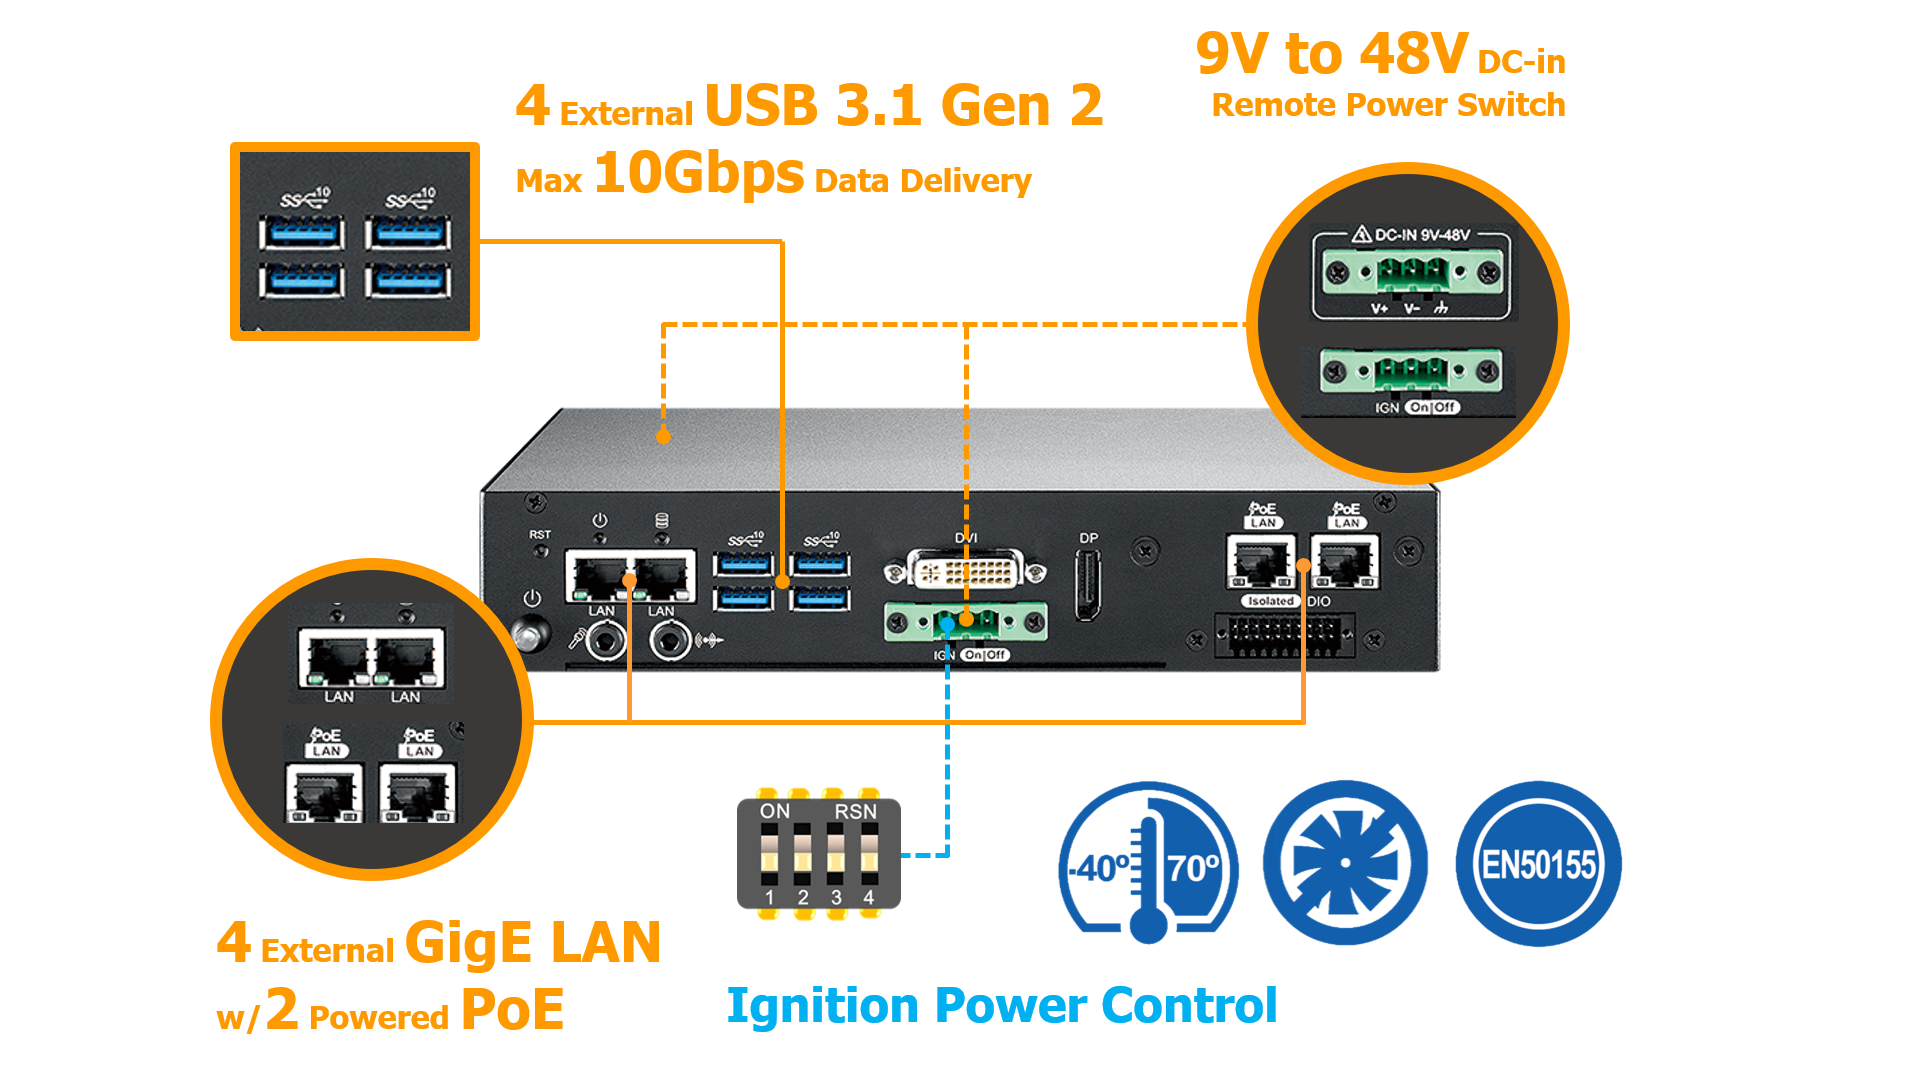 Vecow SPC-5200 Slim Fanless System features system-oriented functions integration